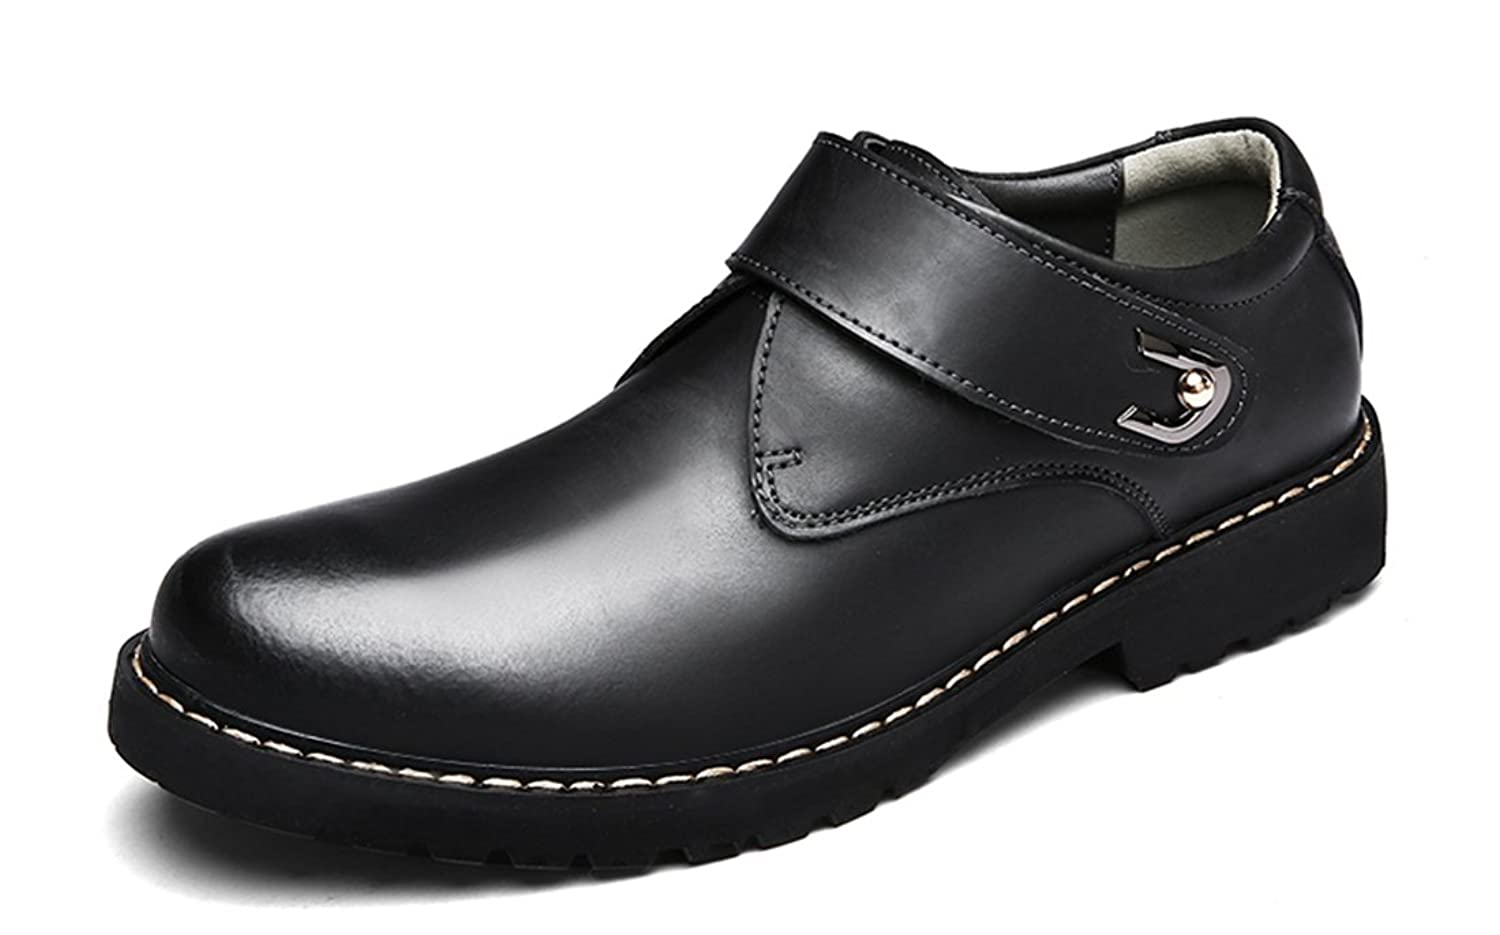 Men's Slip-on Loafers Rubber Sole Leather Dress Work Office Shoes